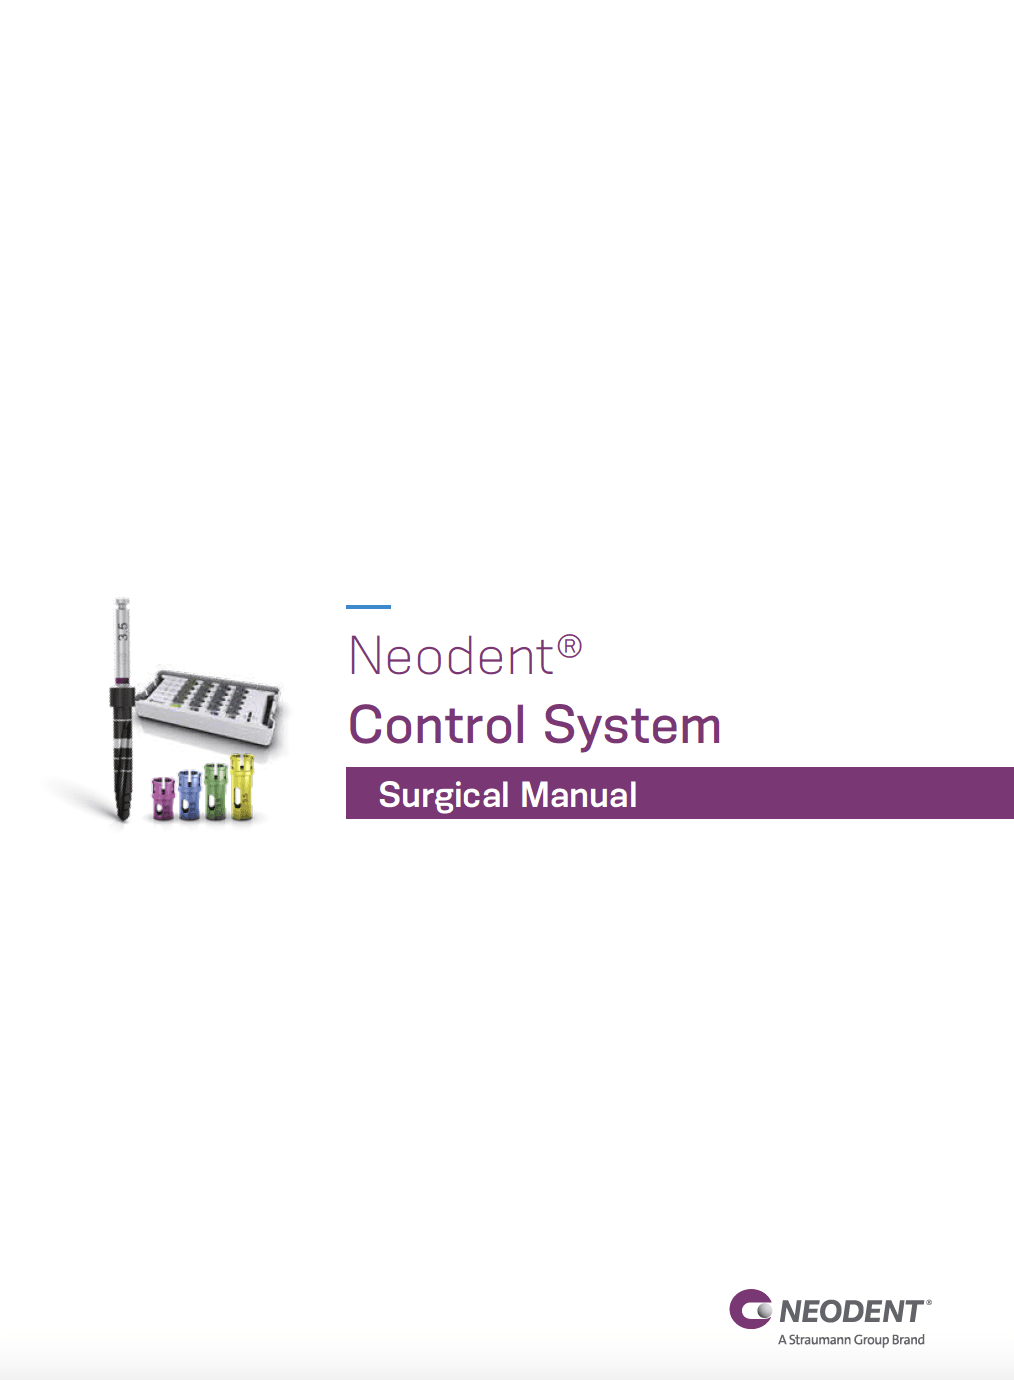 Neodent control system surgical manual (EN)